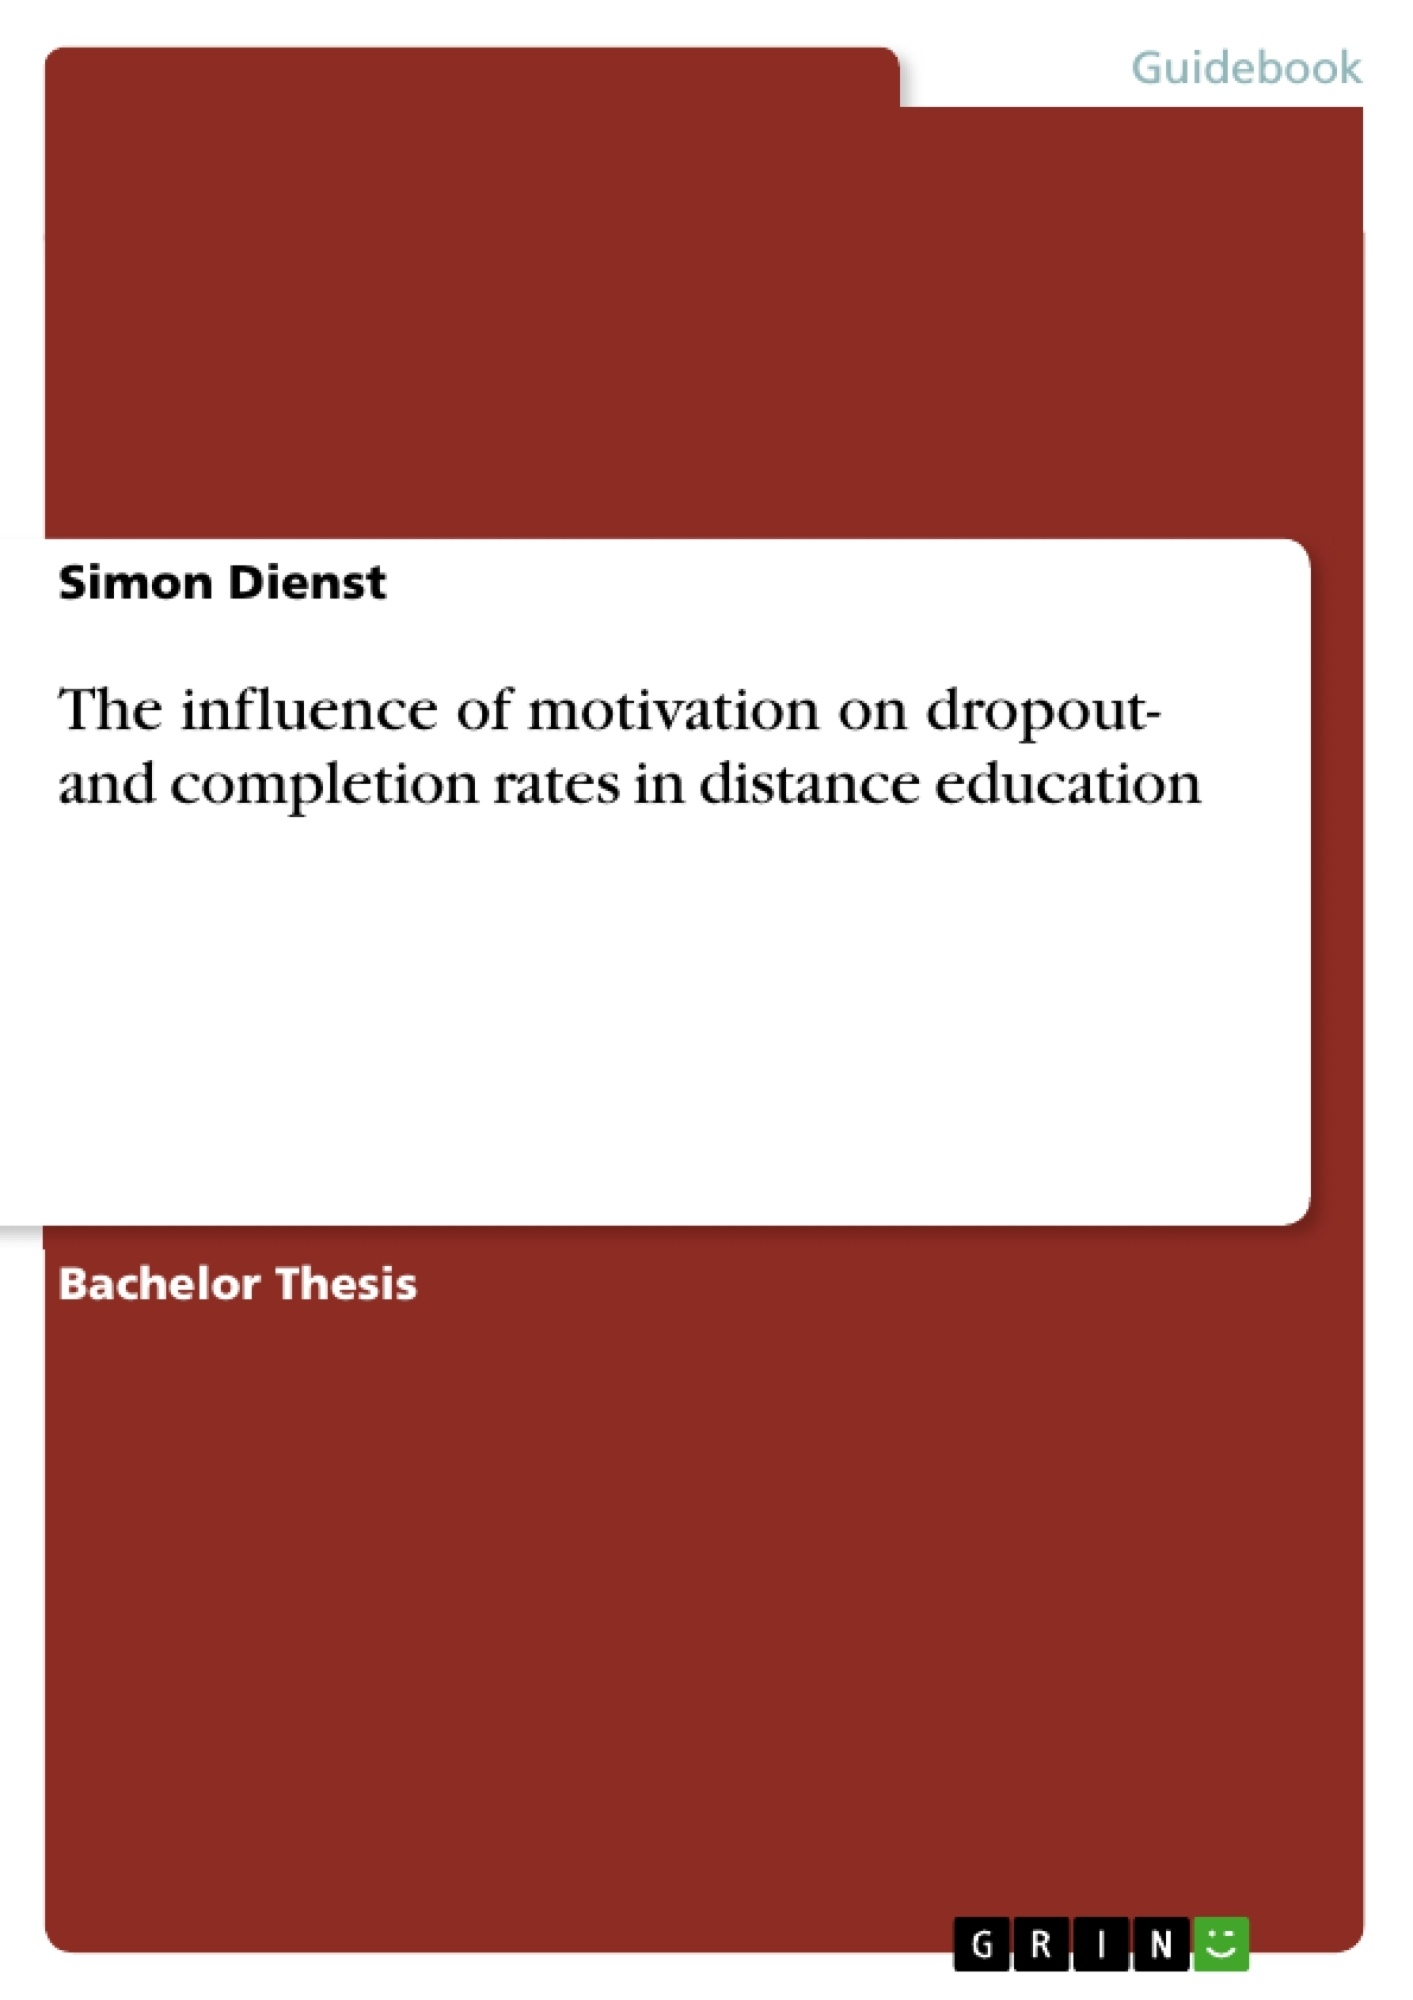 Title: The influence of motivation on dropout- and completion rates in distance education